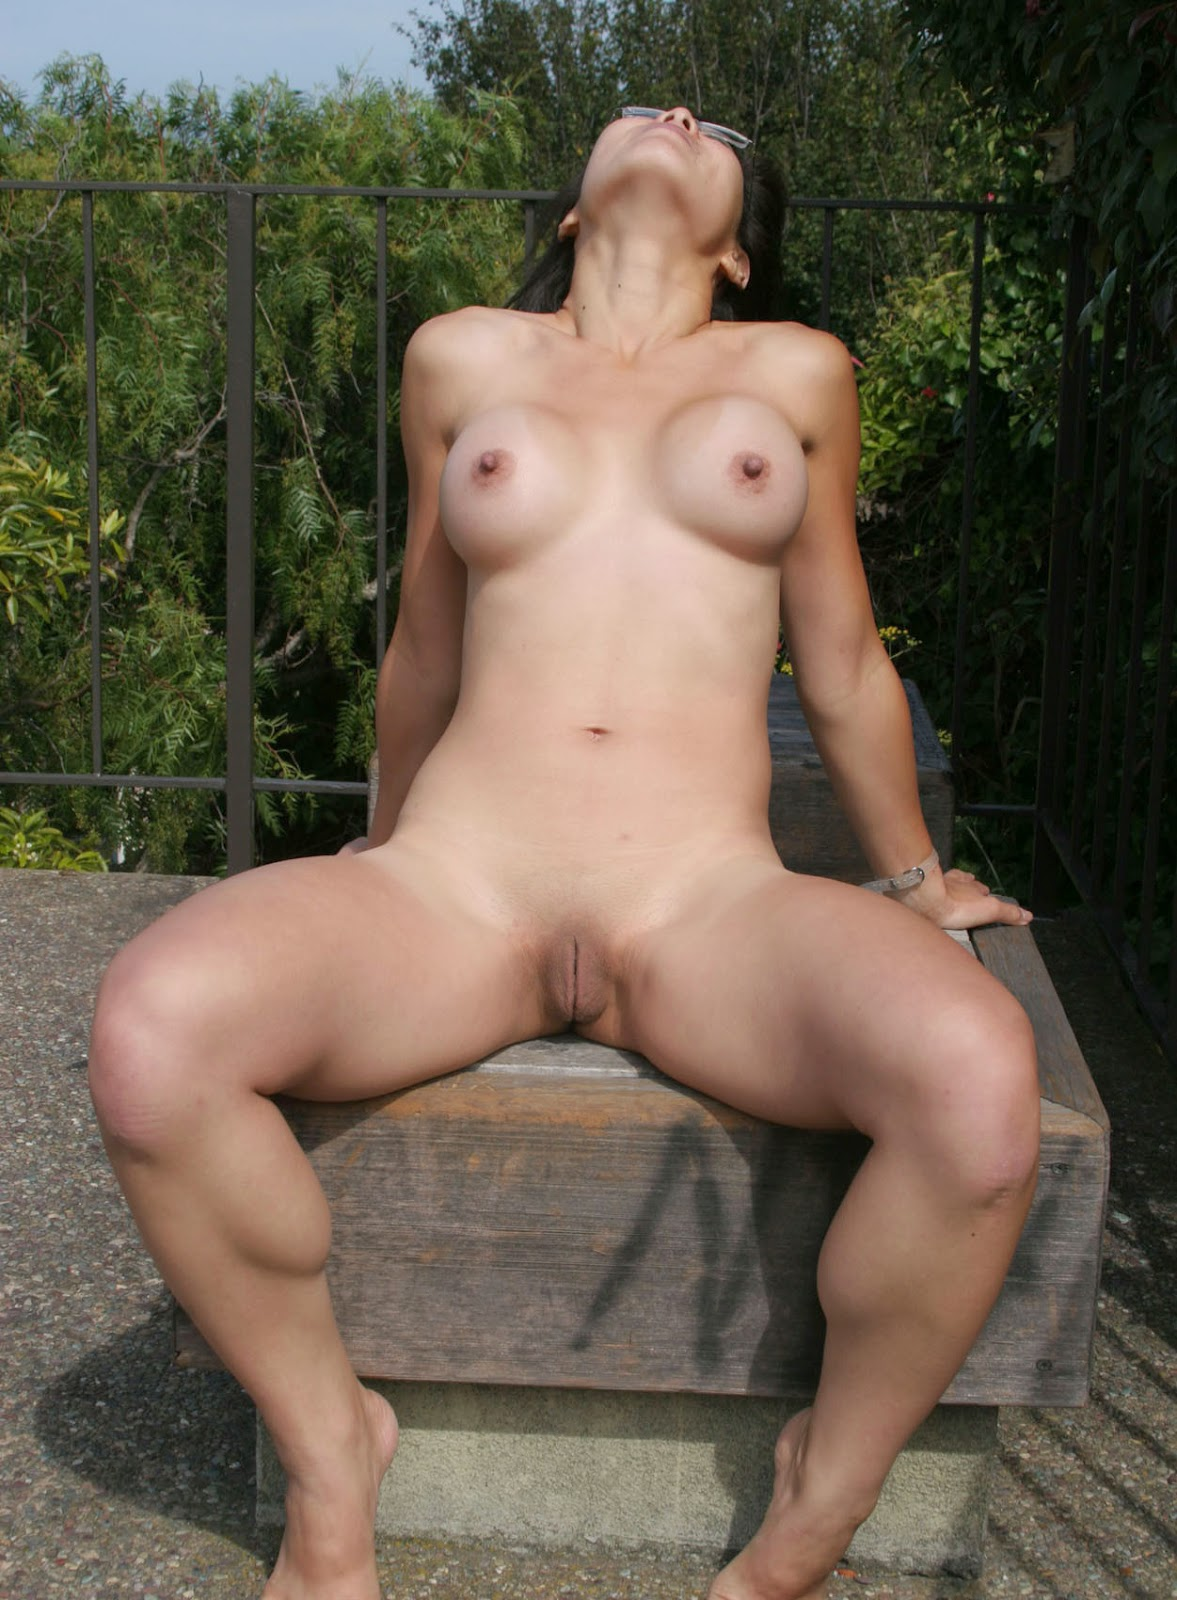 Asian women nudist